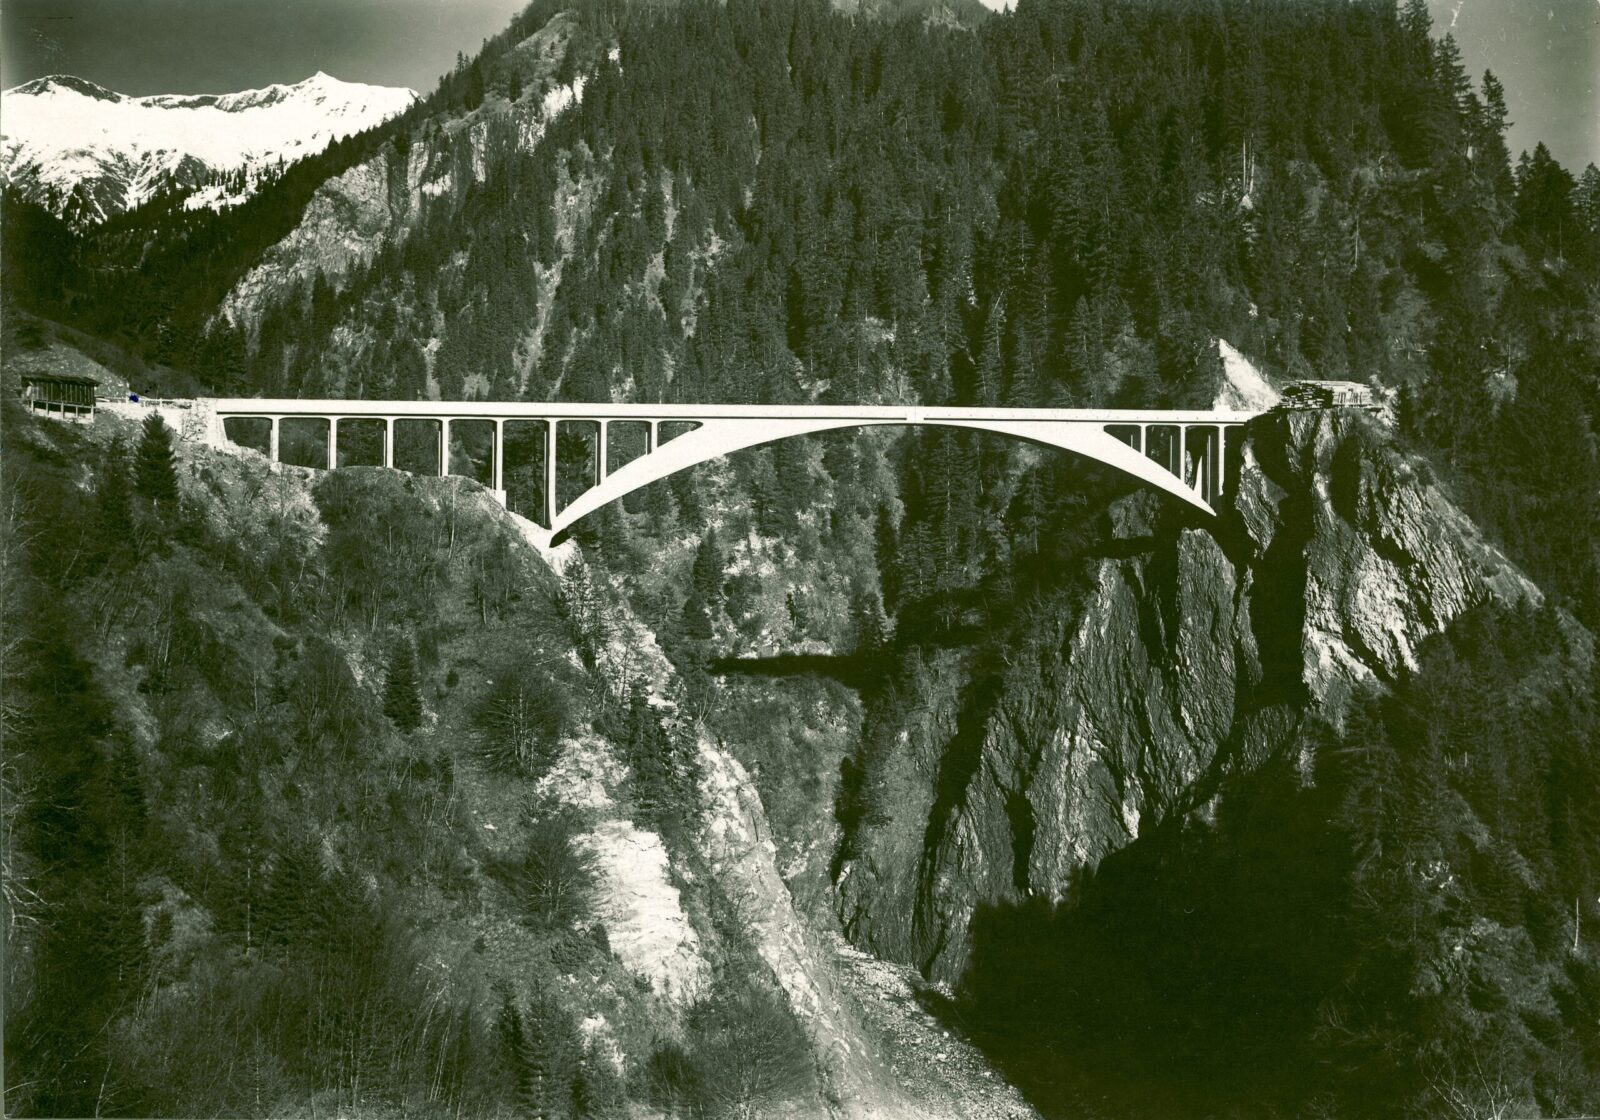 Filigree shape made of reinforced concrete: the Salginatobel Bridge is the most well-known work of Robert Maillart (1872–1940). The roadway bridge near Schiers in the canton of Graubünden was built in 1930 in line with the static principle of the three-hinged hollow box arch, which Maillart had developed.